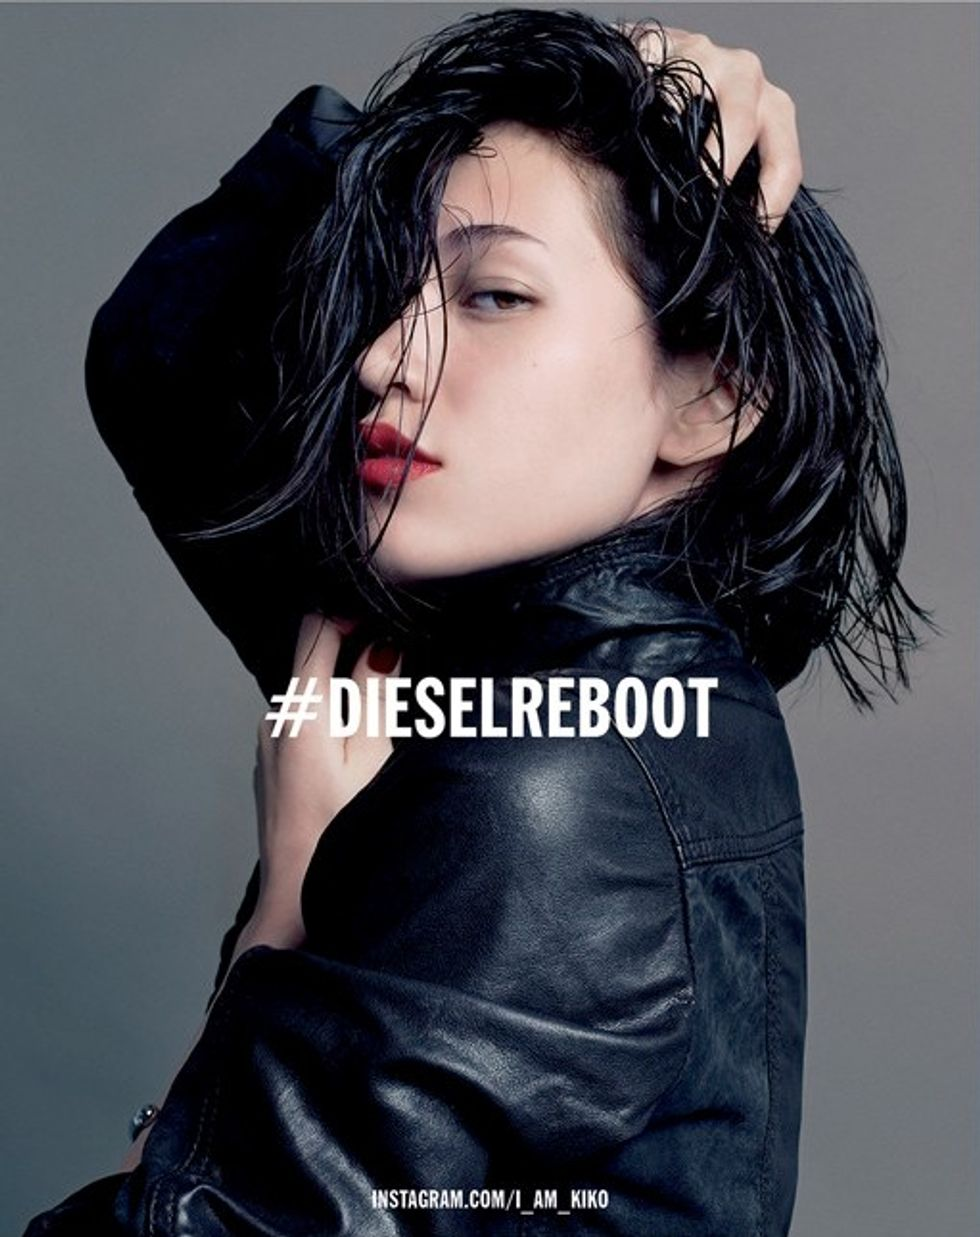 Diesel Used Tumblr to Find Models for Its Ad Campaign and It's Awesome